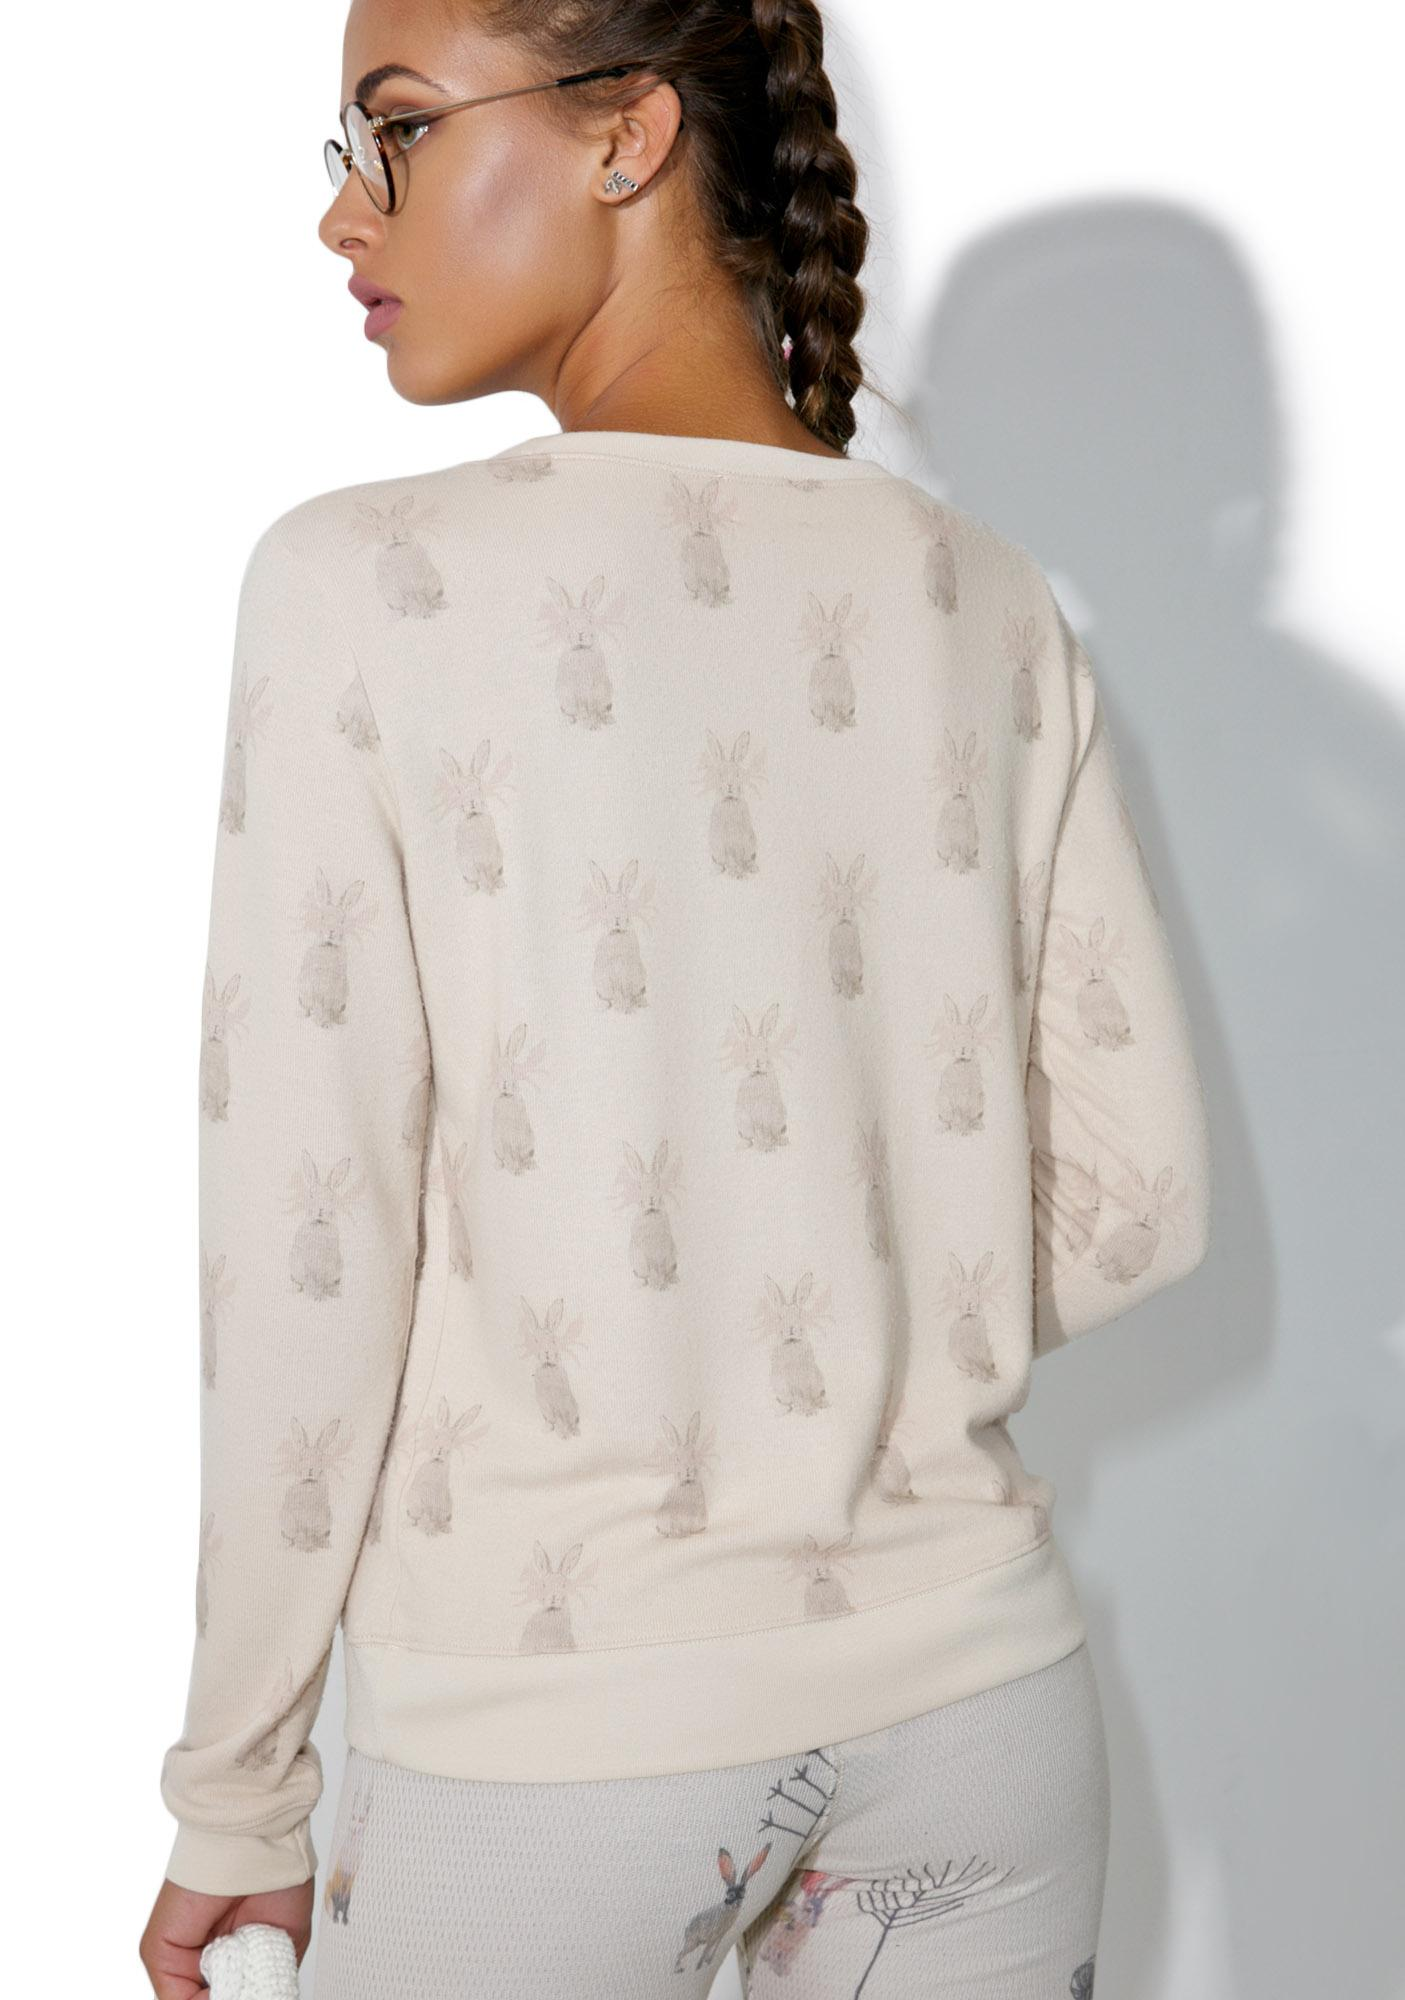 All Things Fabulous Rabbit Cozy Jumper